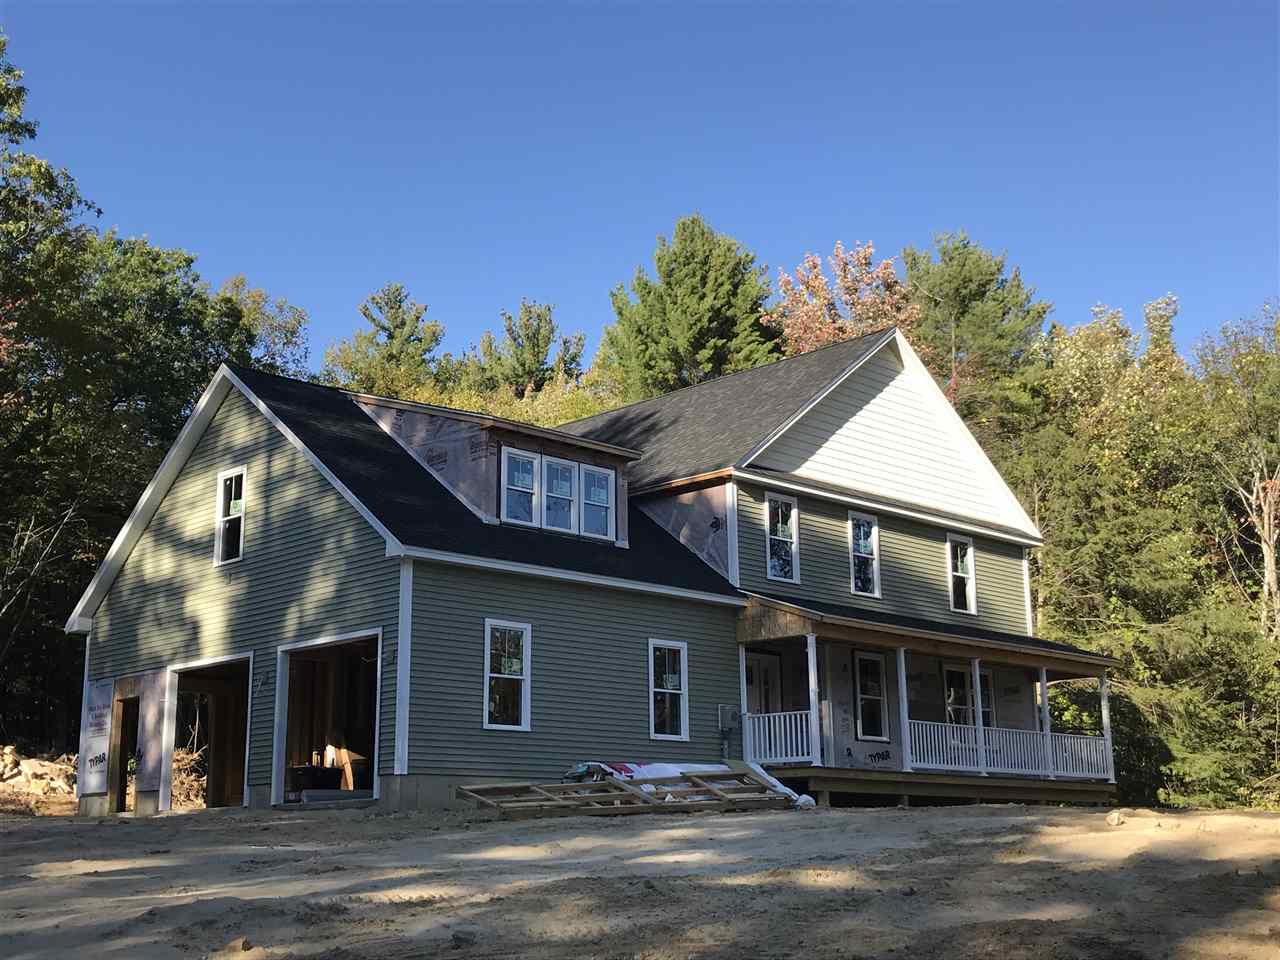 Photo of 33 (Lot 118) Pulpit Road Bedford NH 03110